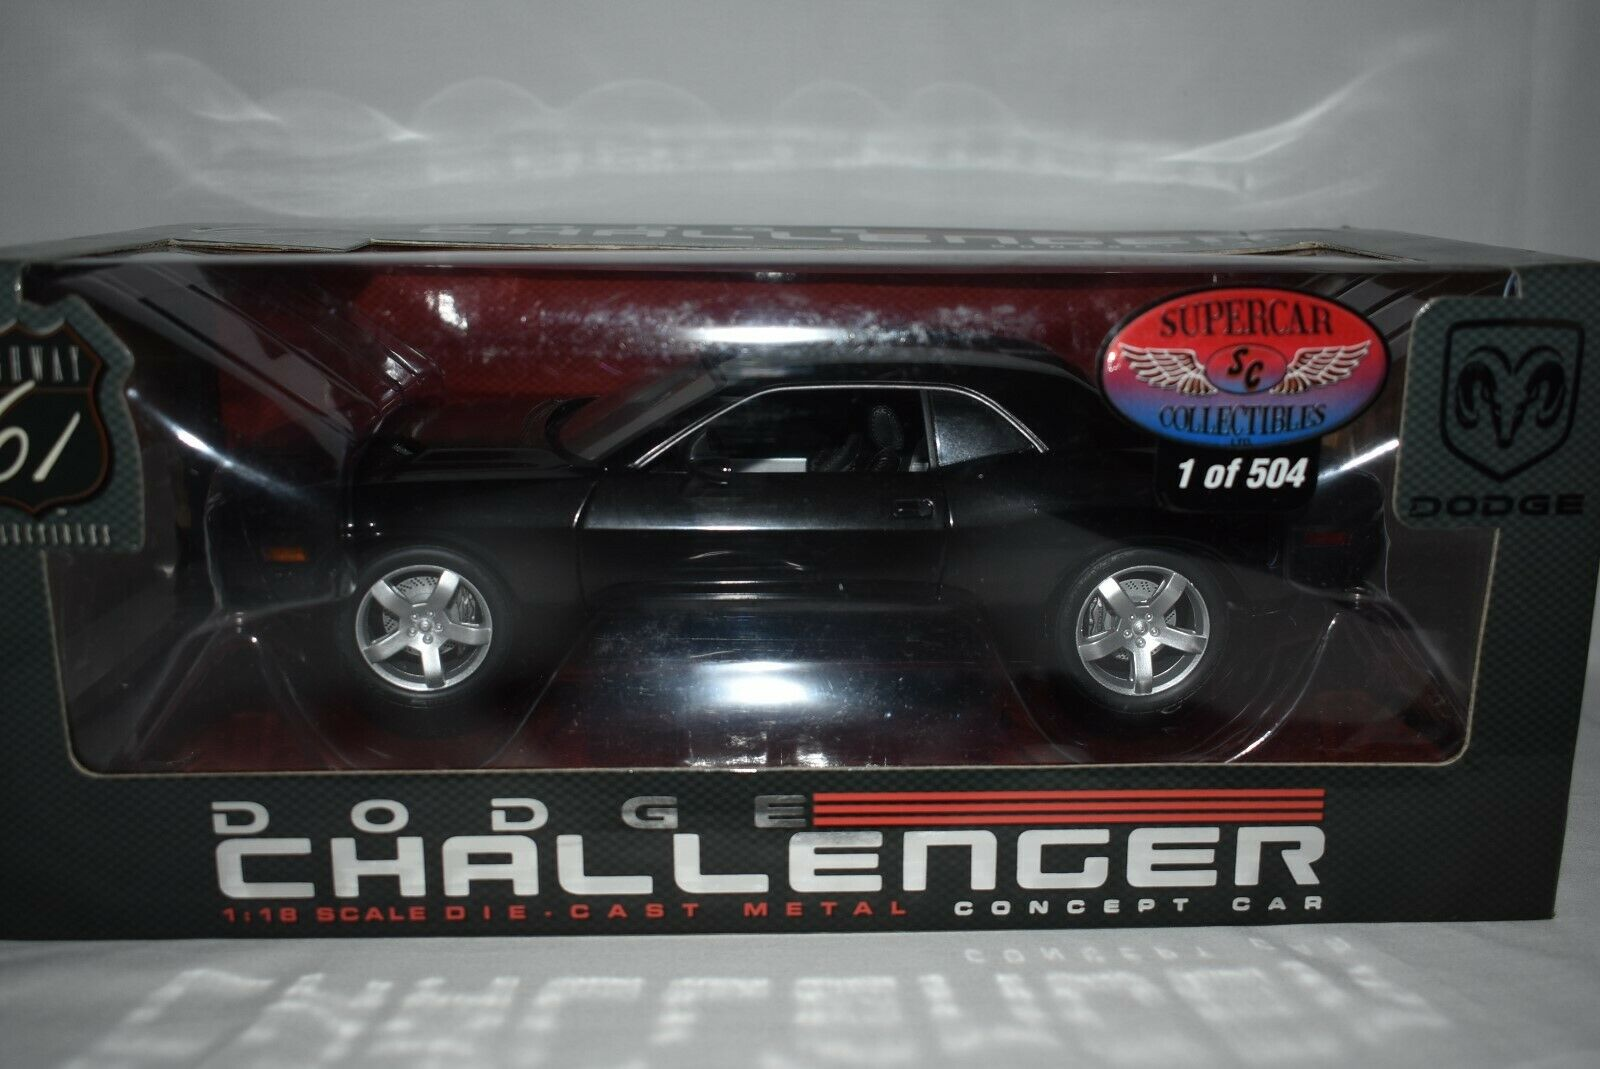 Highway 61 1 18 Dodge Chtuttienger SUPERauto Collectibles 1 di 504 Nero